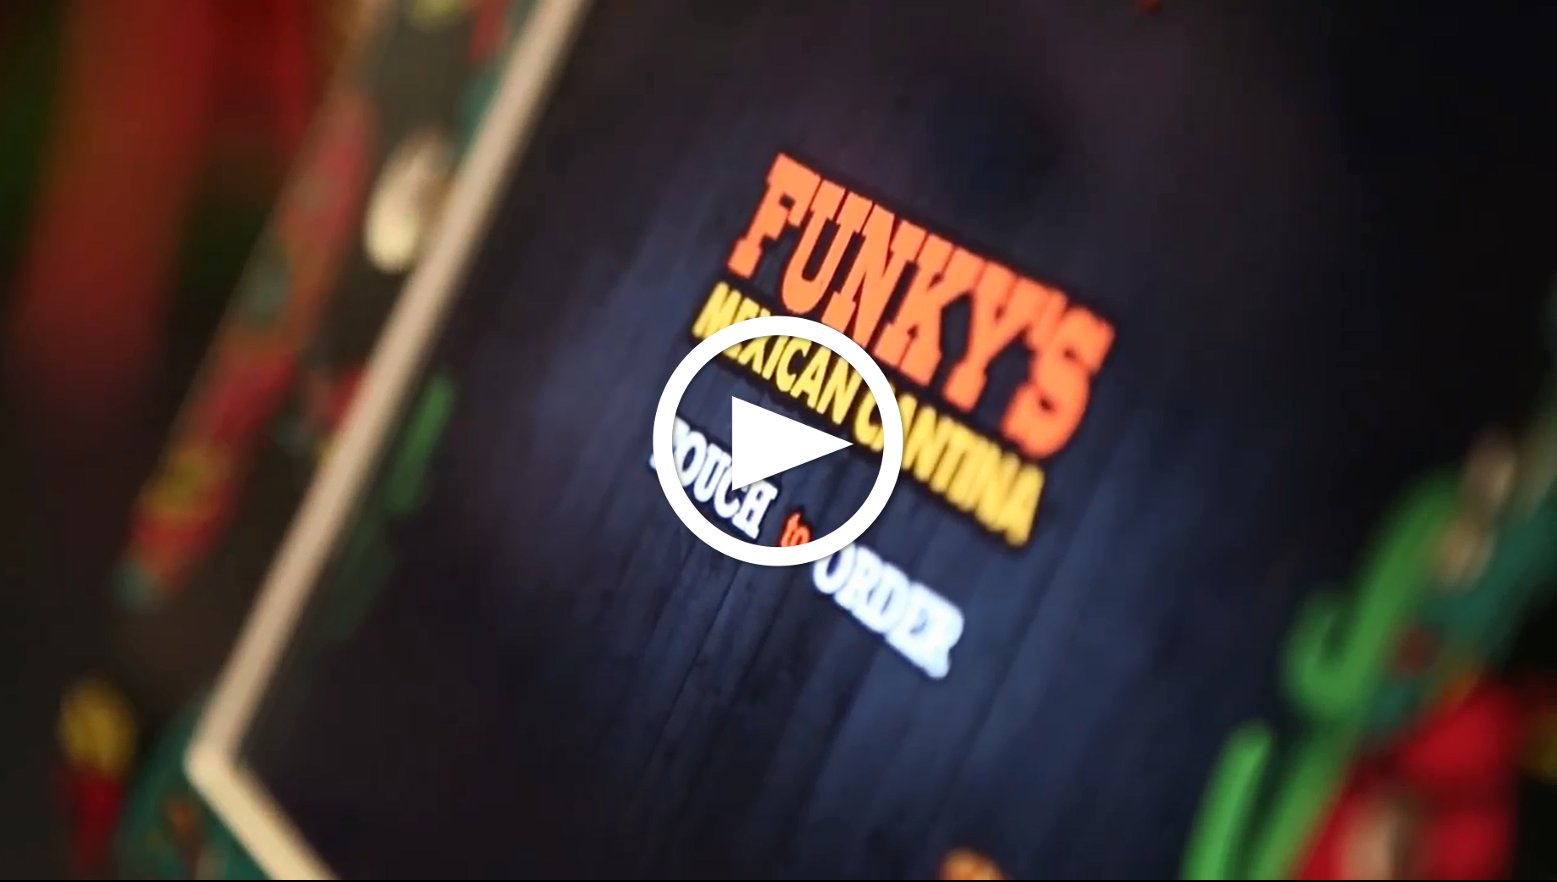 Funky's Mexican Cantina